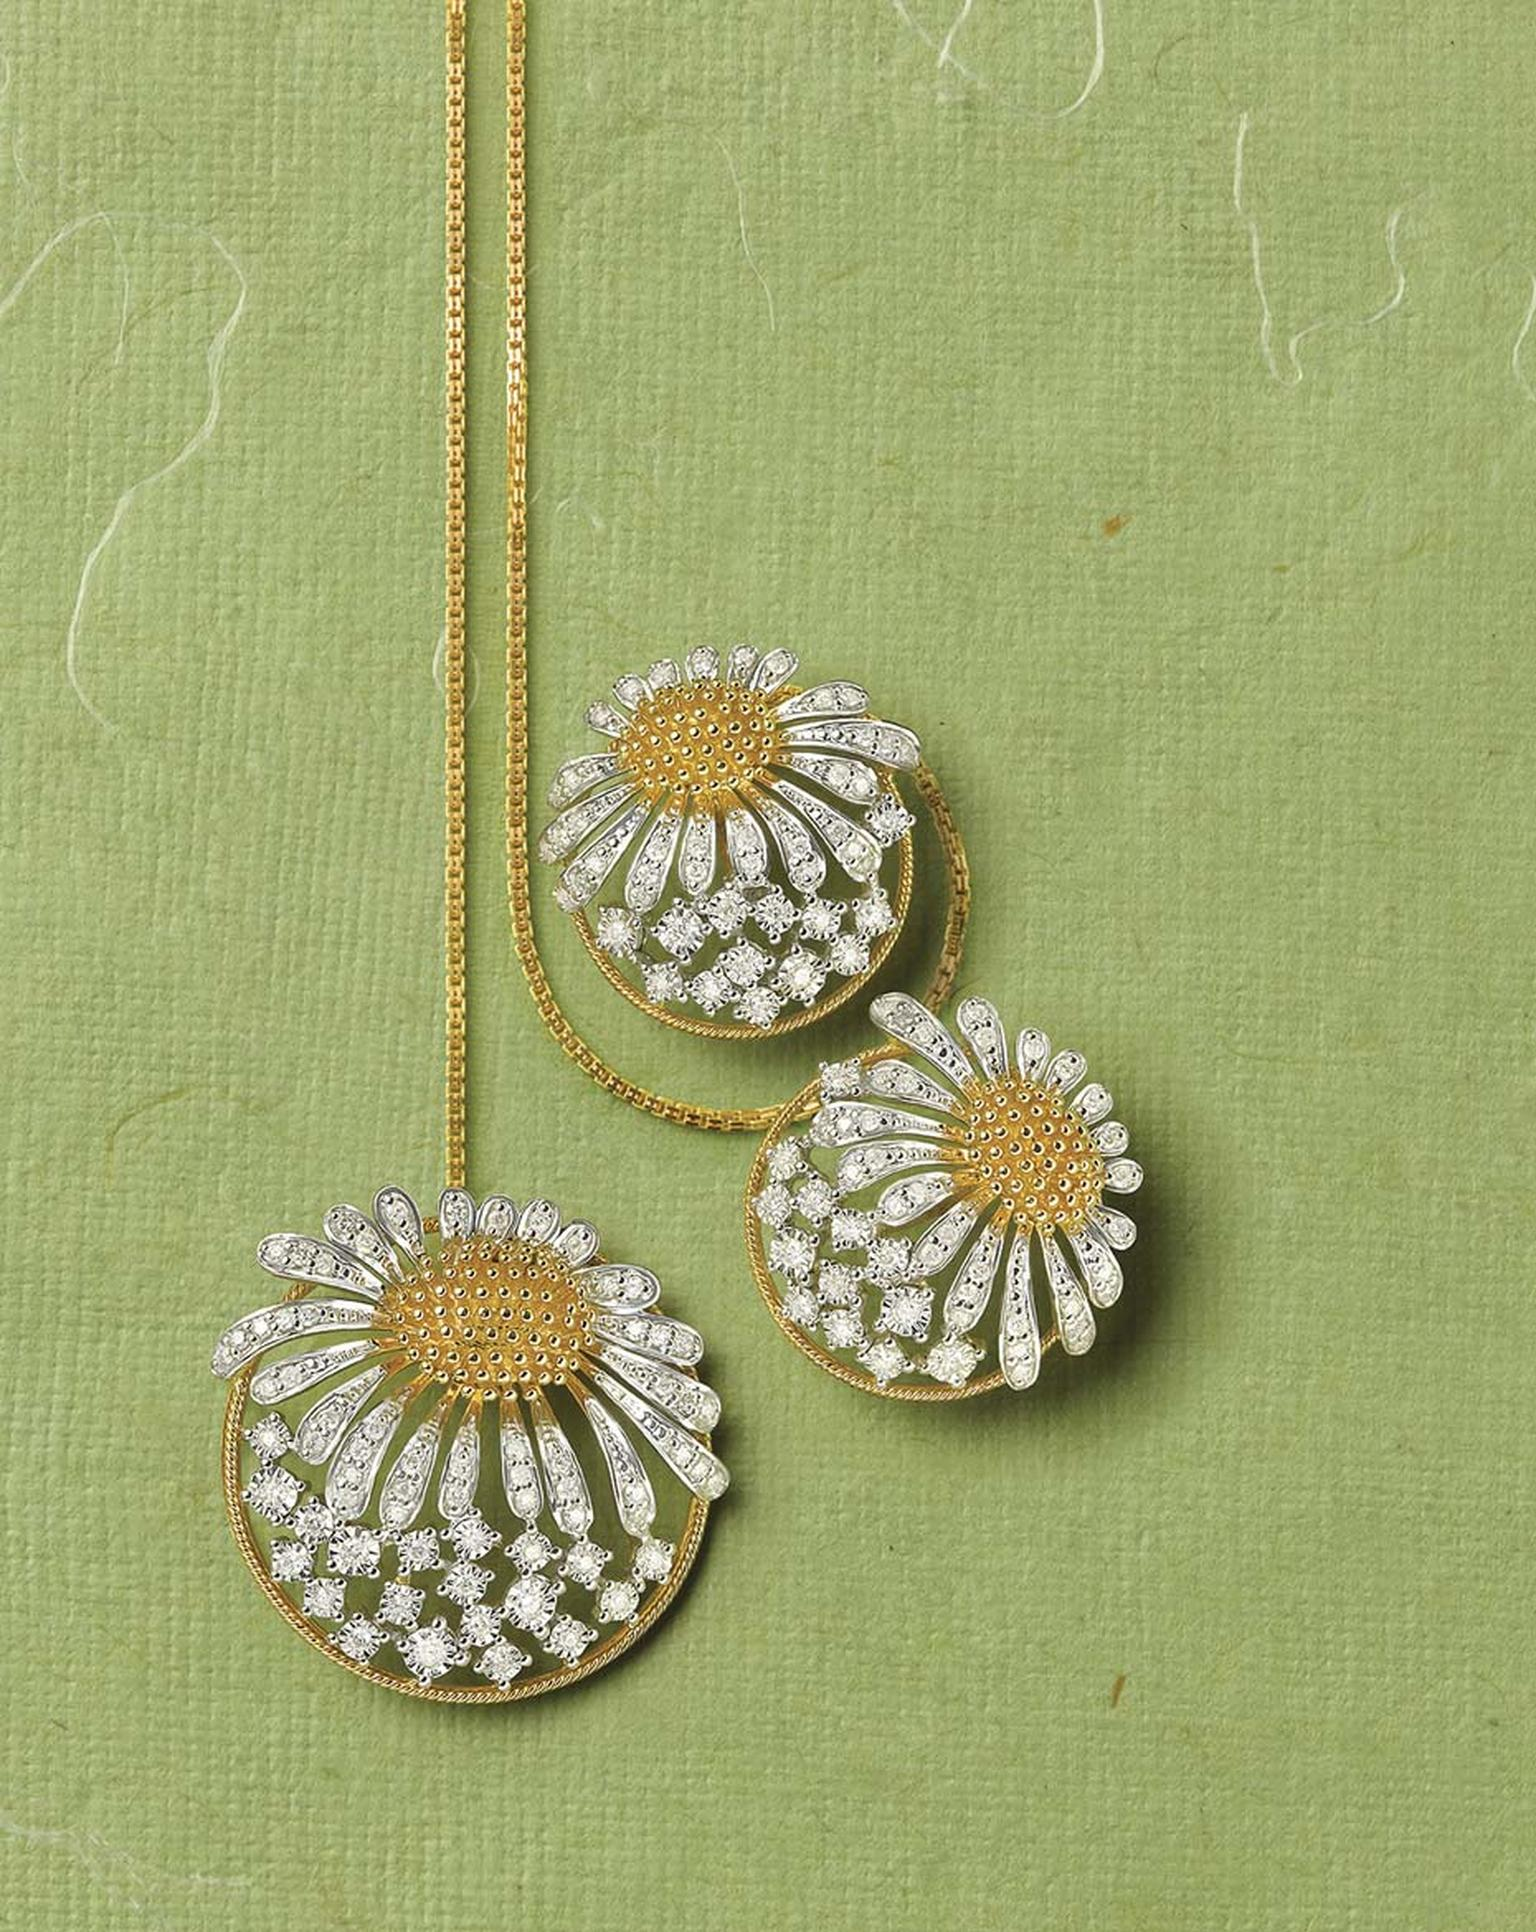 Tanishq launches two vibrant new jewellery collections aimed